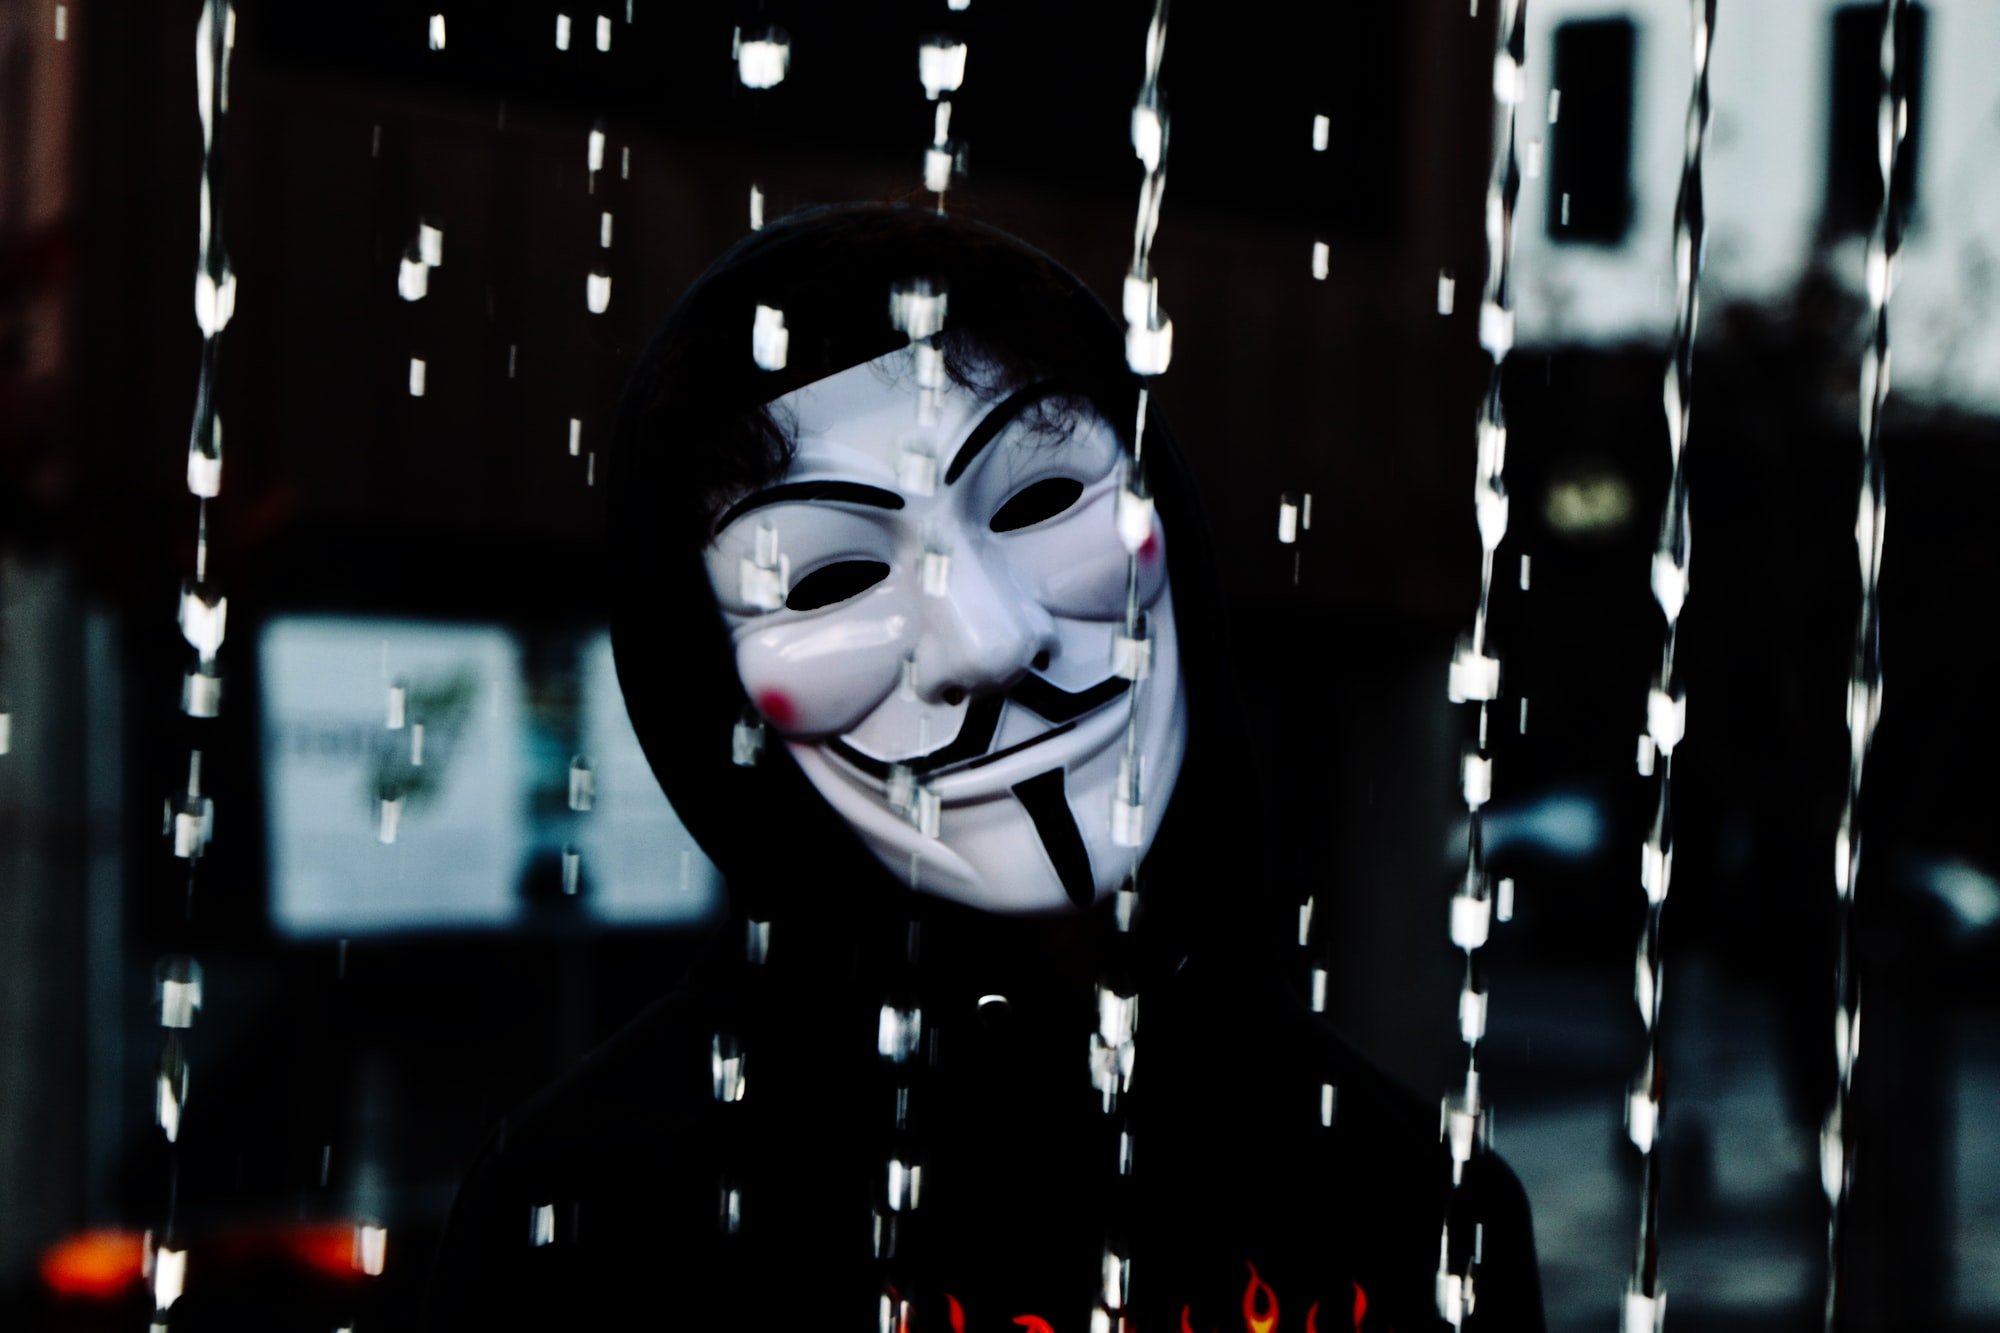 Hacktivism: Social Justice by Data Leaks and Defacements